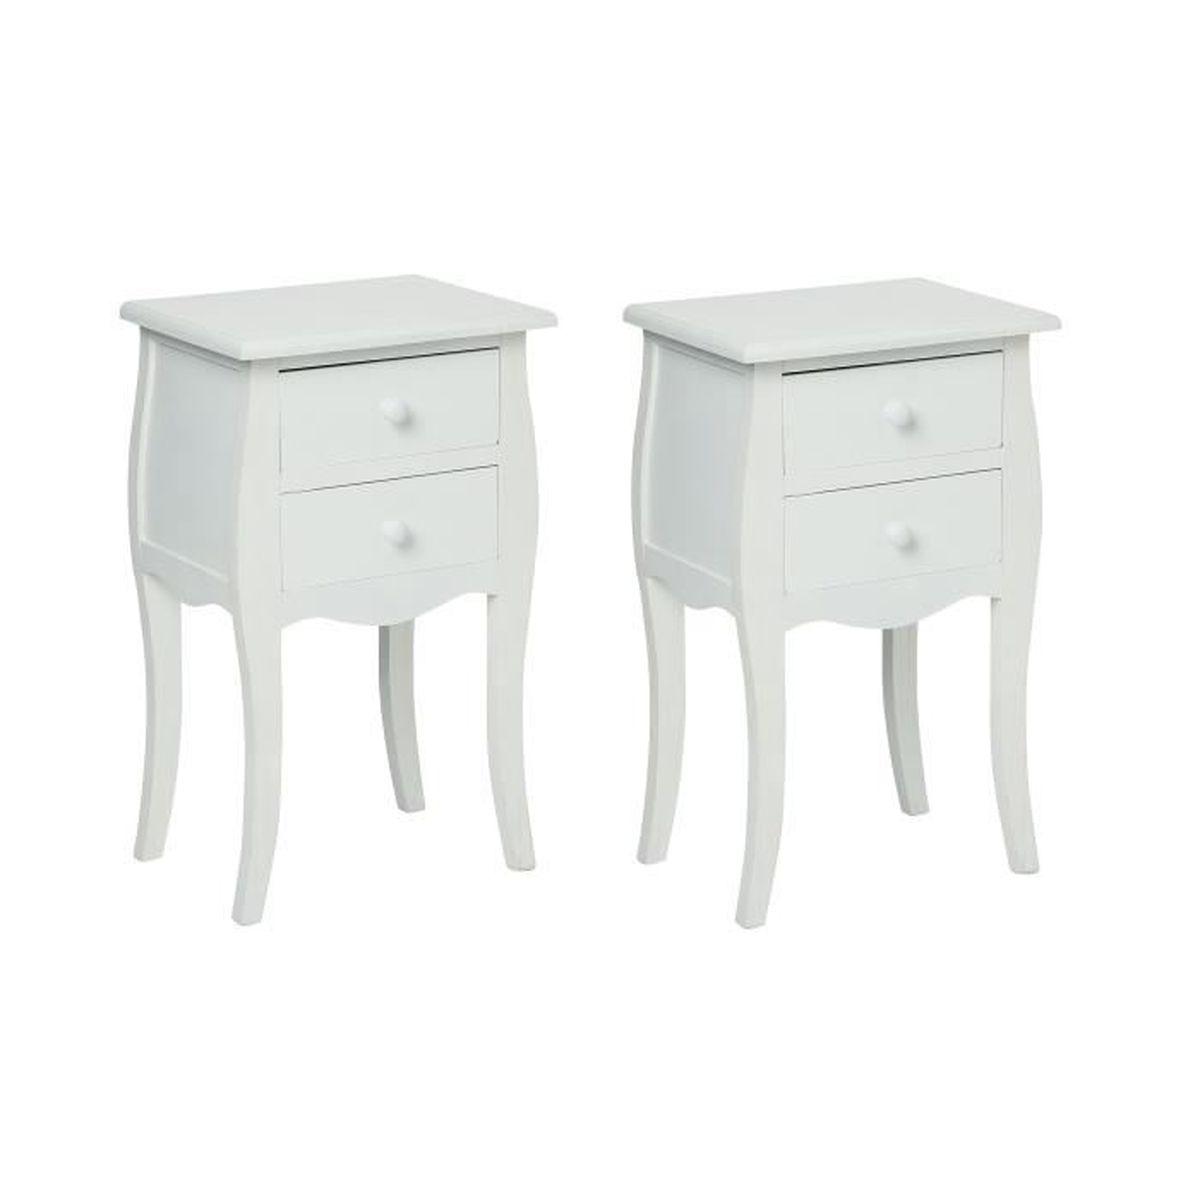 table de chevet 2t blanc achat vente commode de chambre table de chevet 2t blanc soldes d. Black Bedroom Furniture Sets. Home Design Ideas